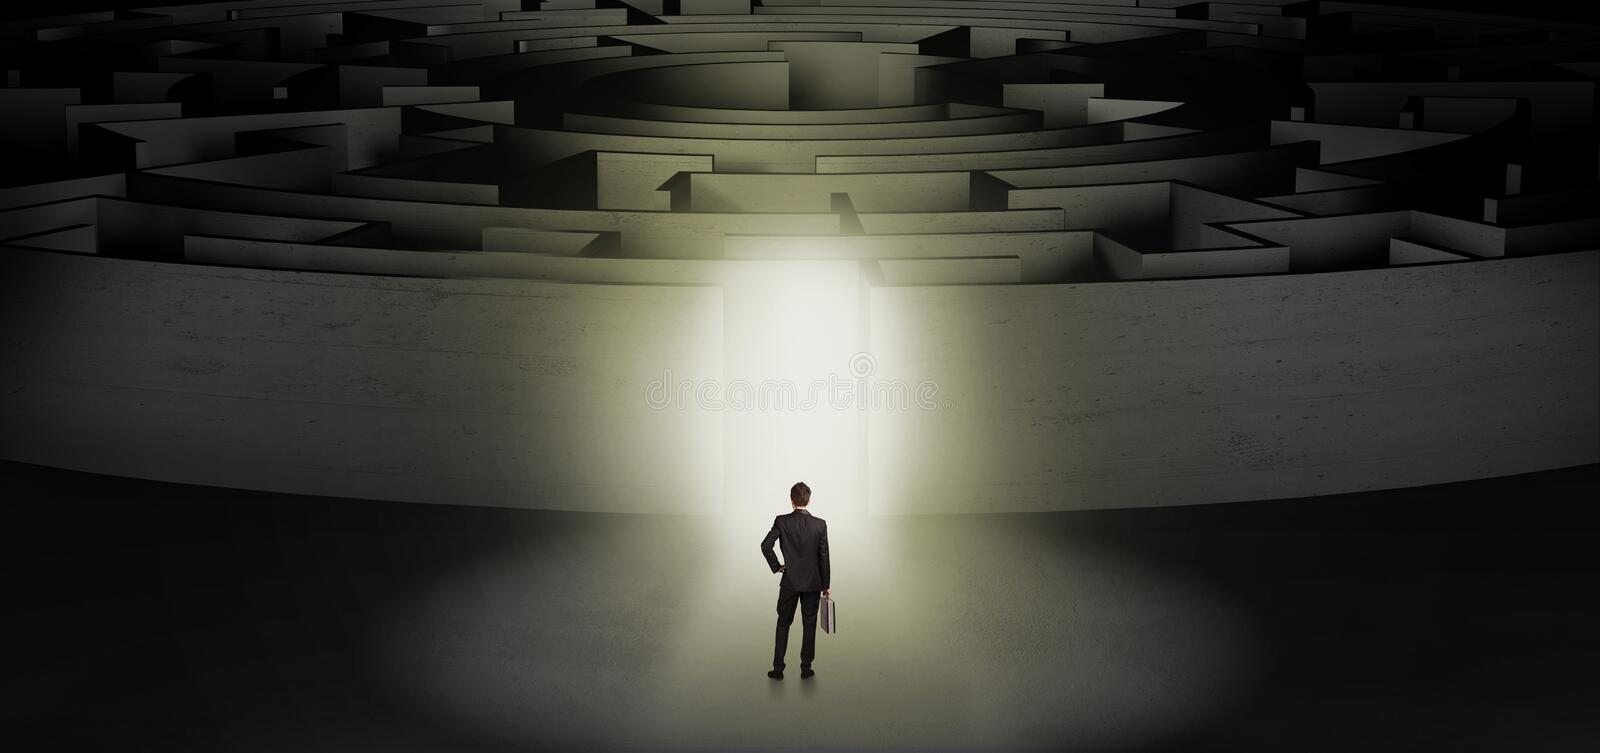 Businessman starting a concentric labyrinth. Businessman getting ready to enter a concentric labyrinth with lighted entrance concept royalty free stock photo